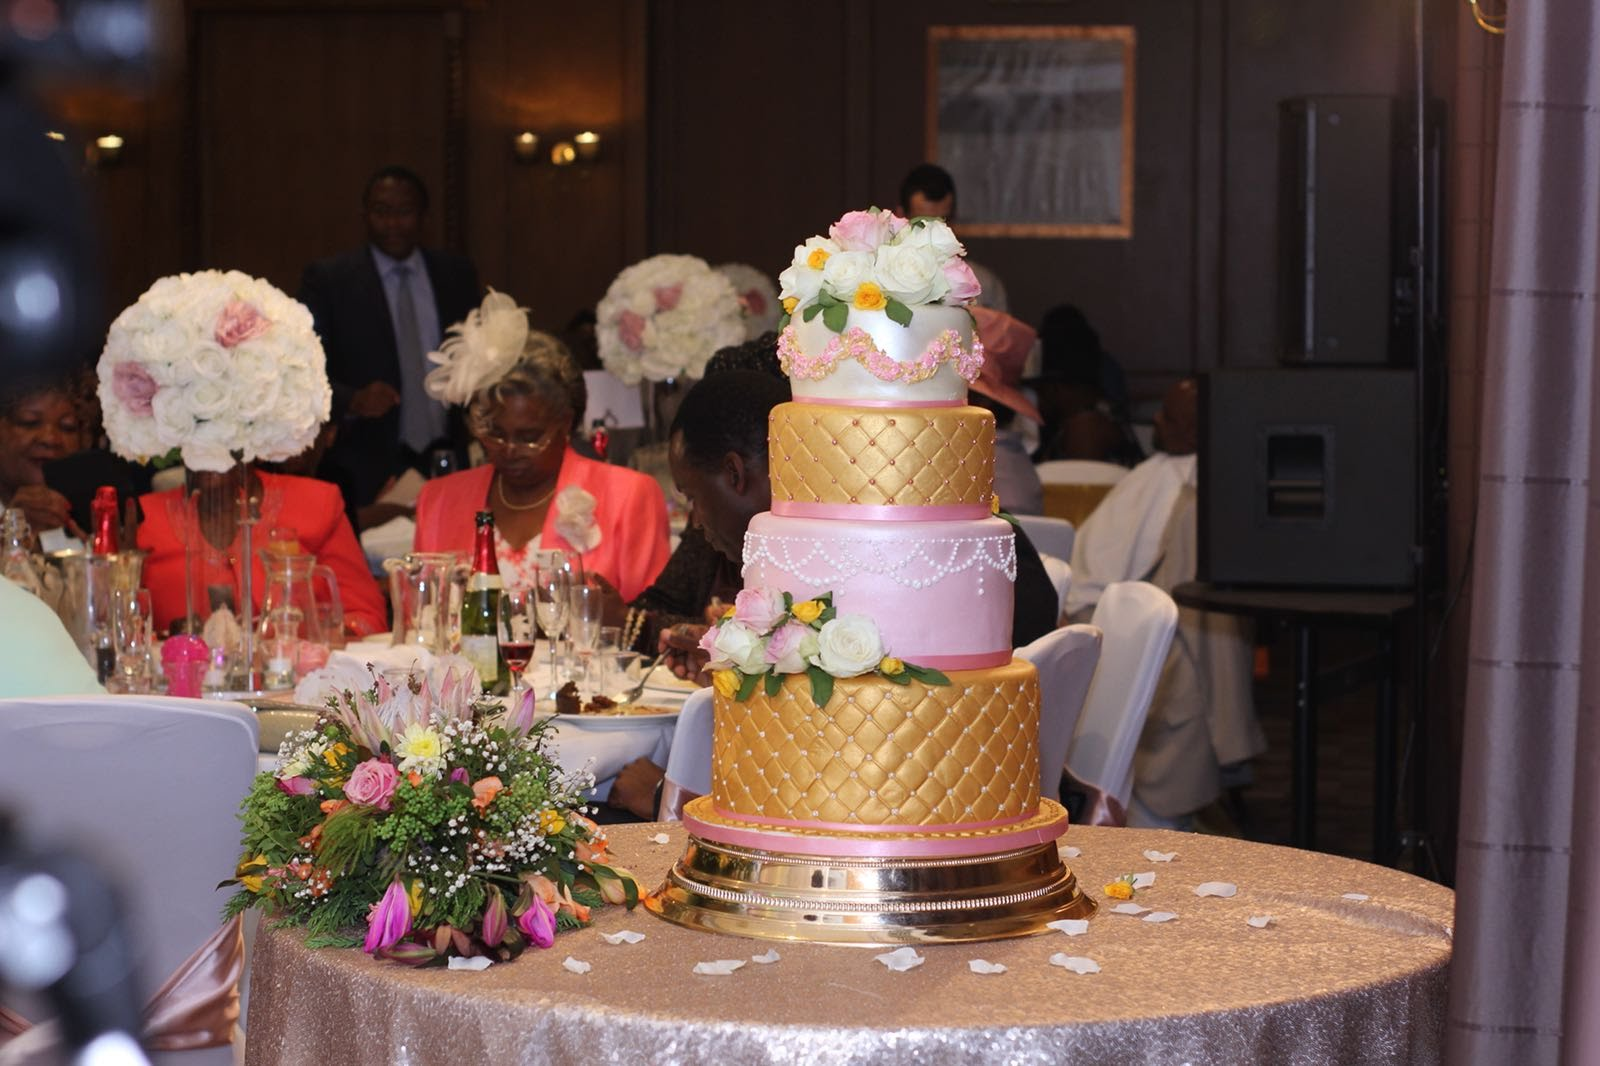 4 tier wedding cake - A beautiful hand painted, hand piped wedding cake made in traditional fruit cake and red velvet cake. A stunning cake enjoyed by all.